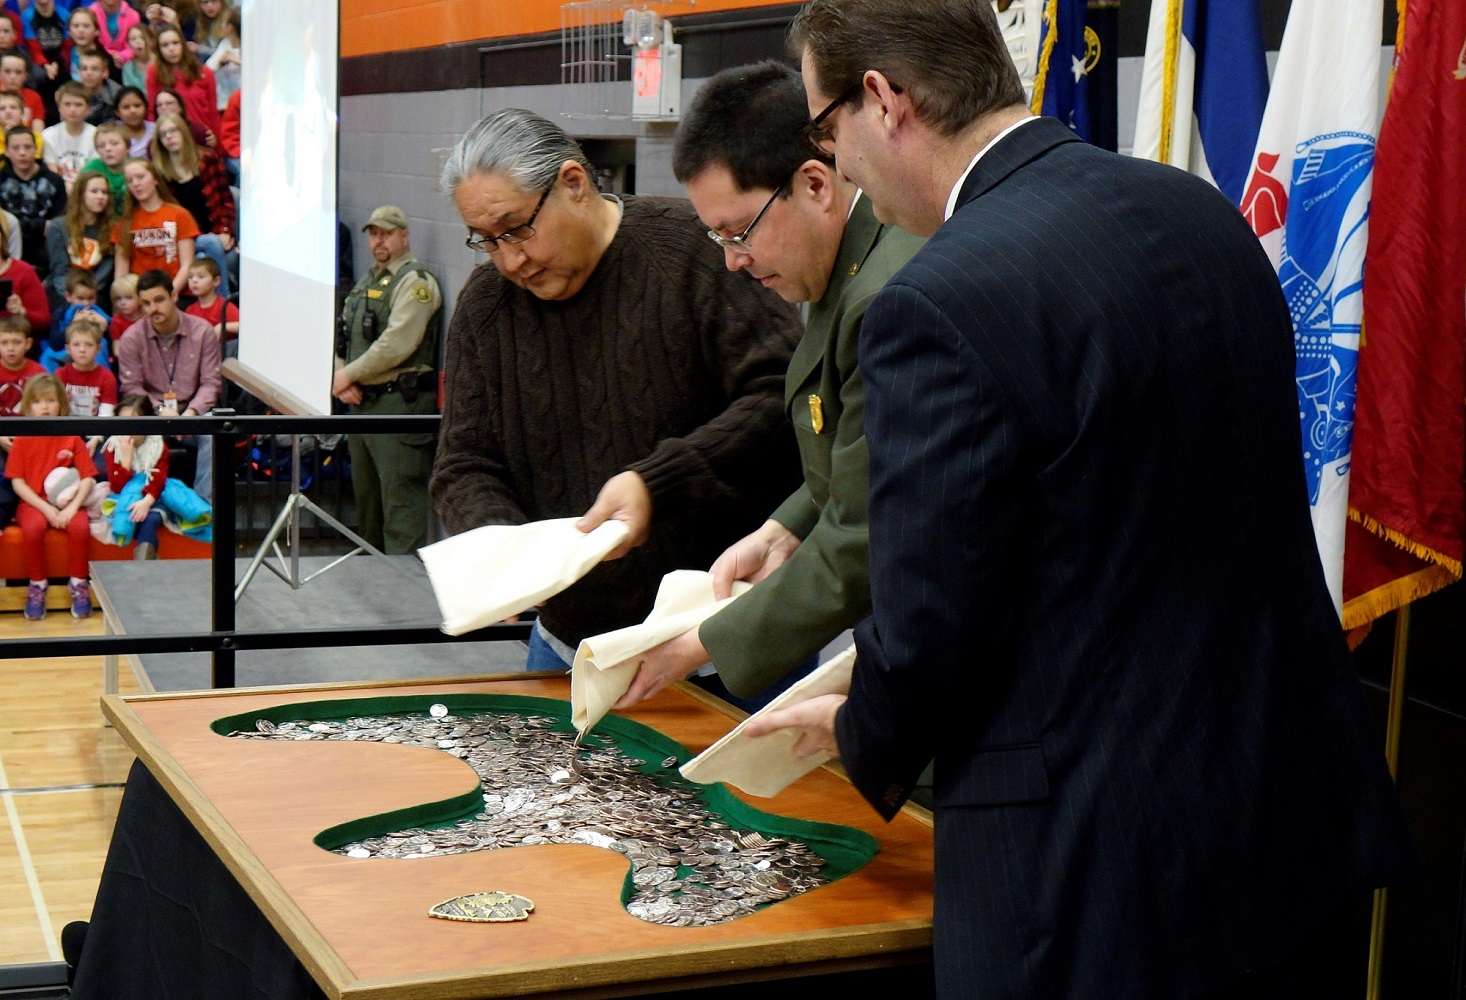 Chairman Edmore Green, Superintendent Jim Nepstad, and U.S. Mint Plant Superintendent Marc Landry pour coins during the launch of the Effigy Mounds National Monument quarter in Waukon, Iowa. U.S. Mint photo by Jill Westeyn.